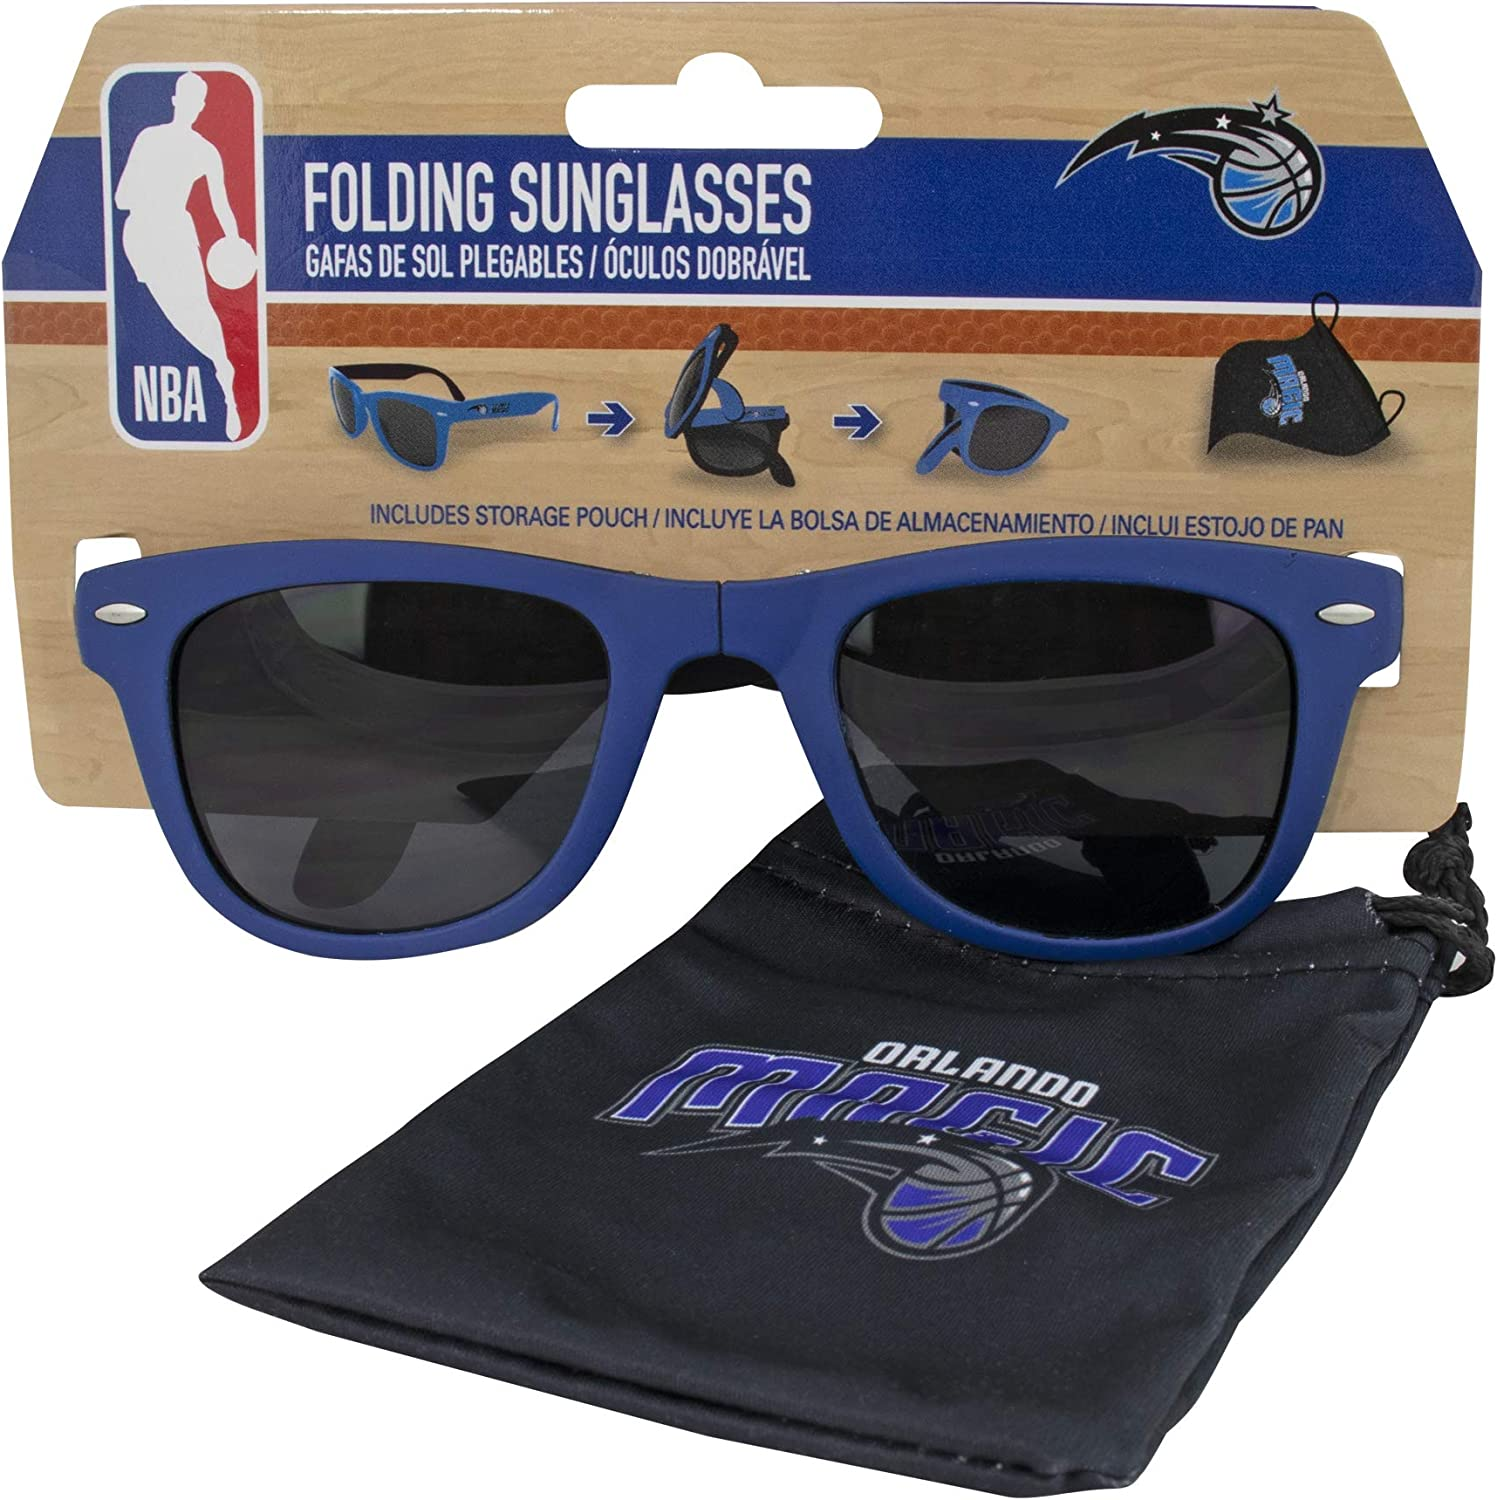 Orlando Magic Folding Sunglasses with Carrier Pouch